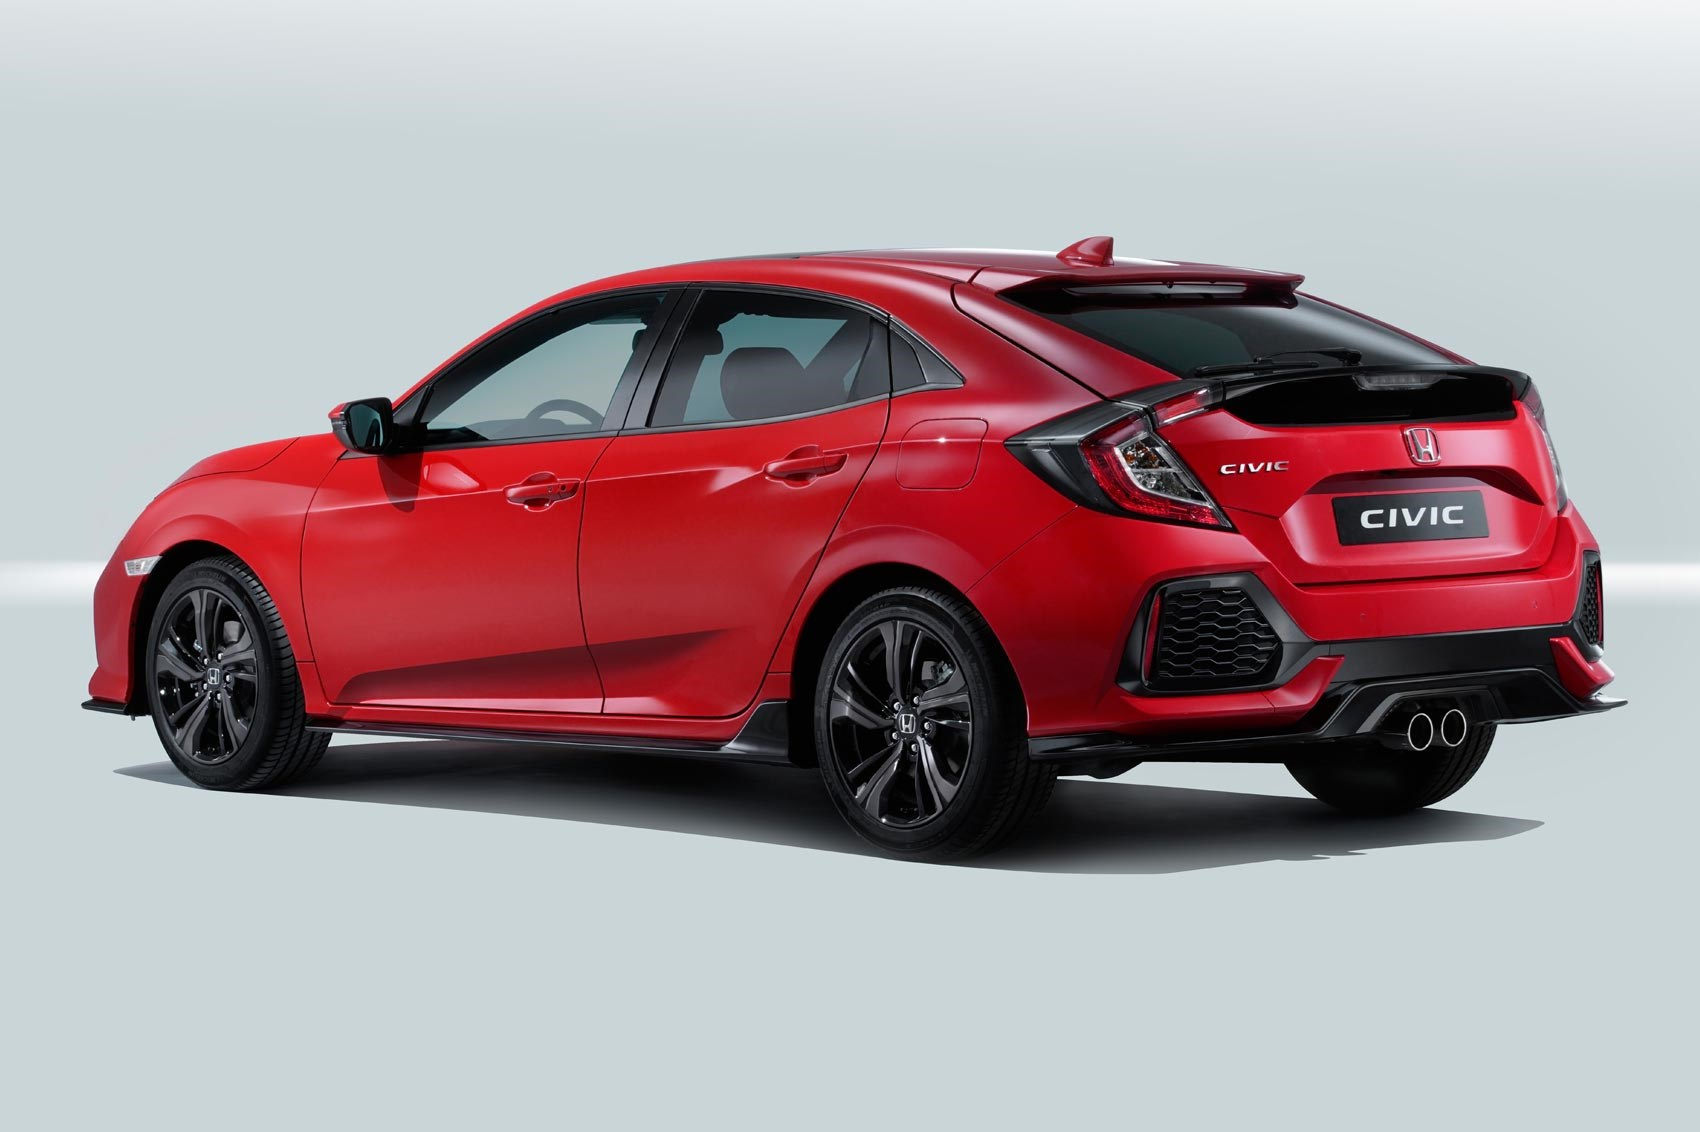 New 2017 Honda Civic Hatchback Officially Unveiled